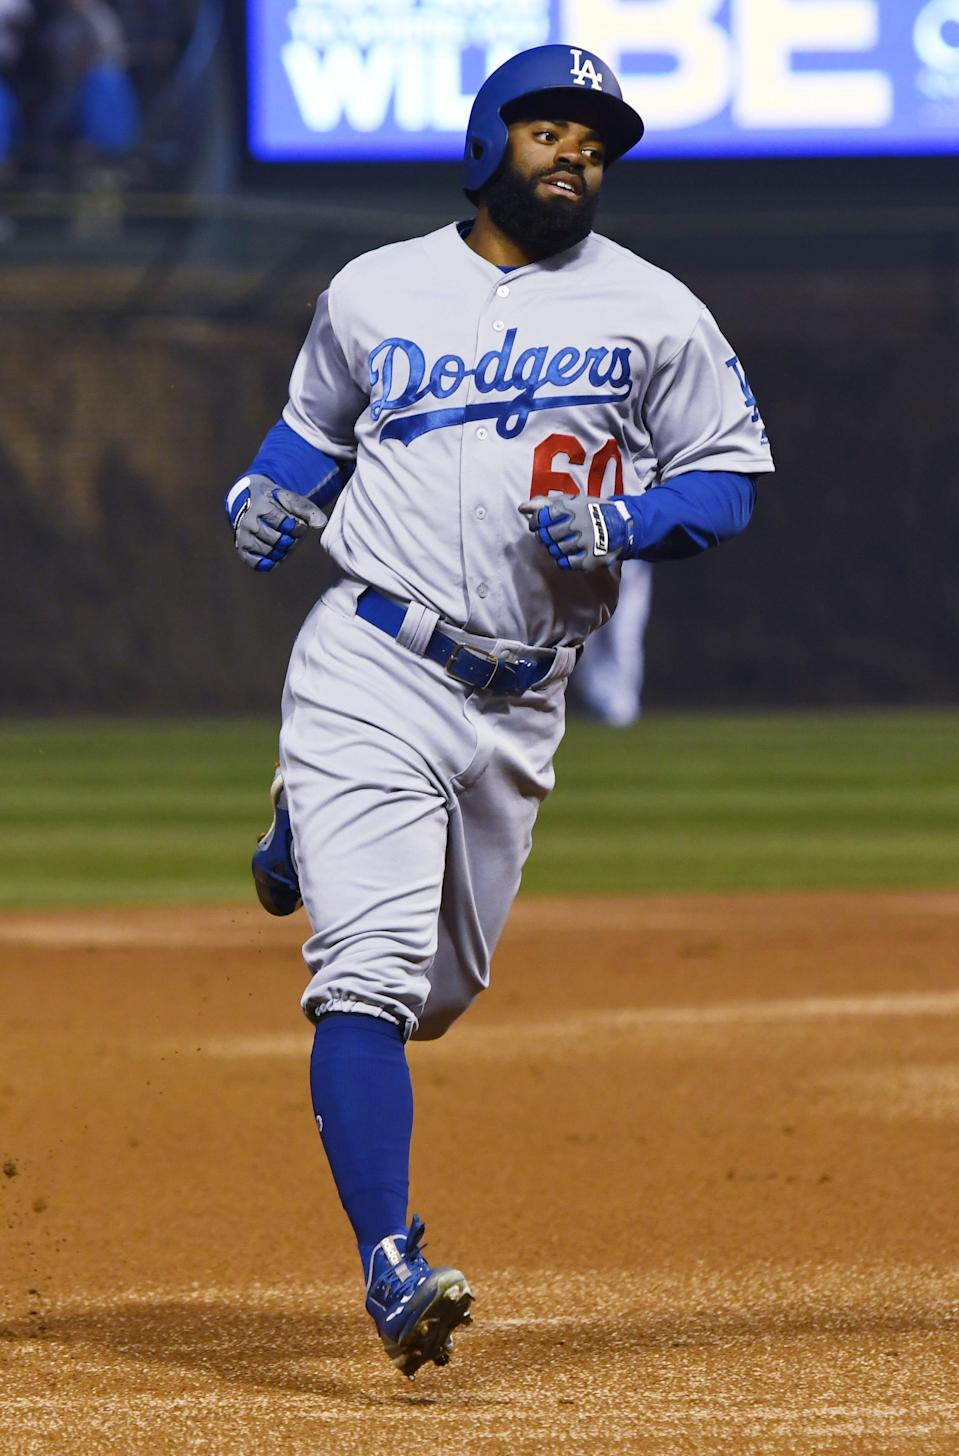 Andrew Toles played in parts of three seasons (2016-18) with the Dodgers.